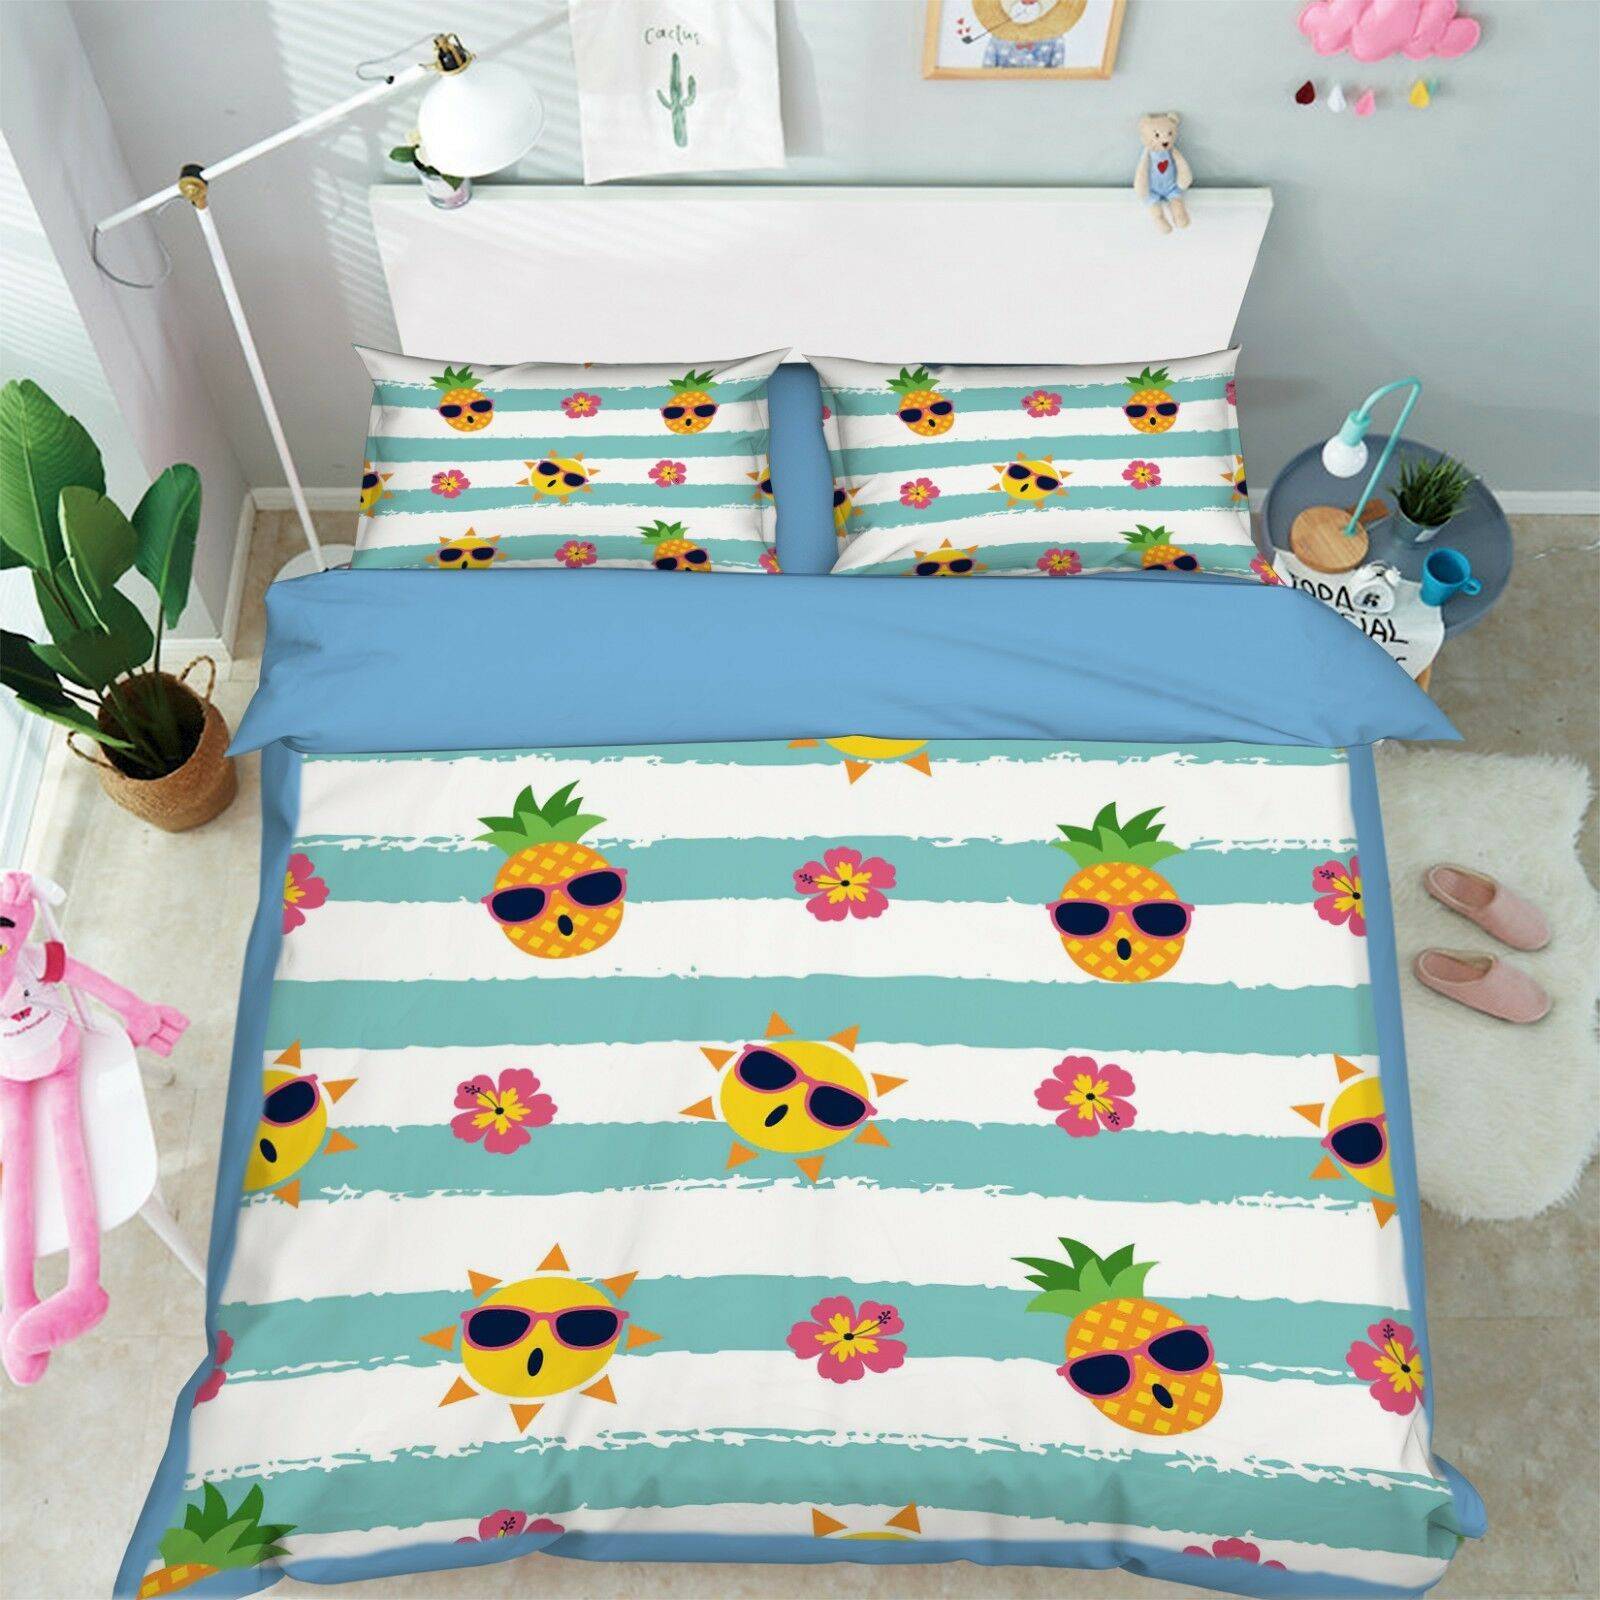 3D Kid Pineapple 689 Bed Pillowcases Quilt Duvet Cover Set Single King UK Summer